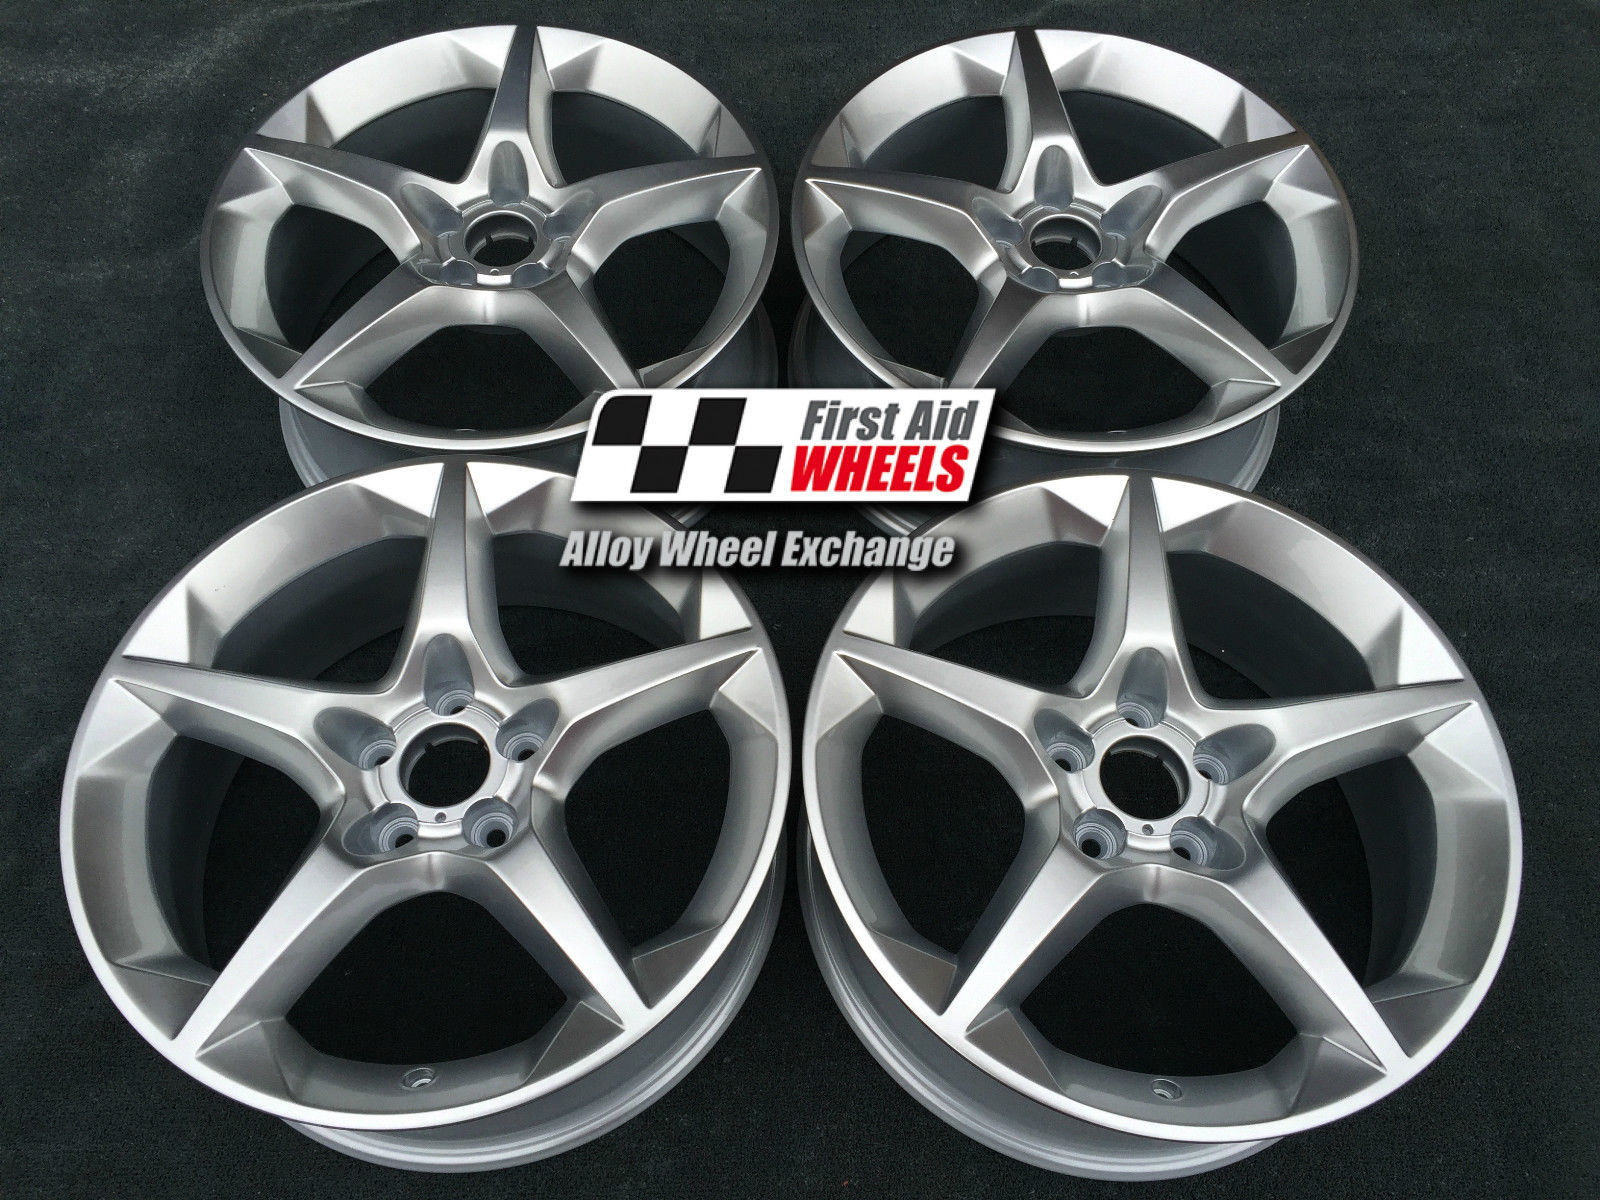 "R366 Silver VAUXHALL ASTRA SRI XP 18"" - PENTA Genuine Alloy Wheels Set of 4 - EXCHANGE"